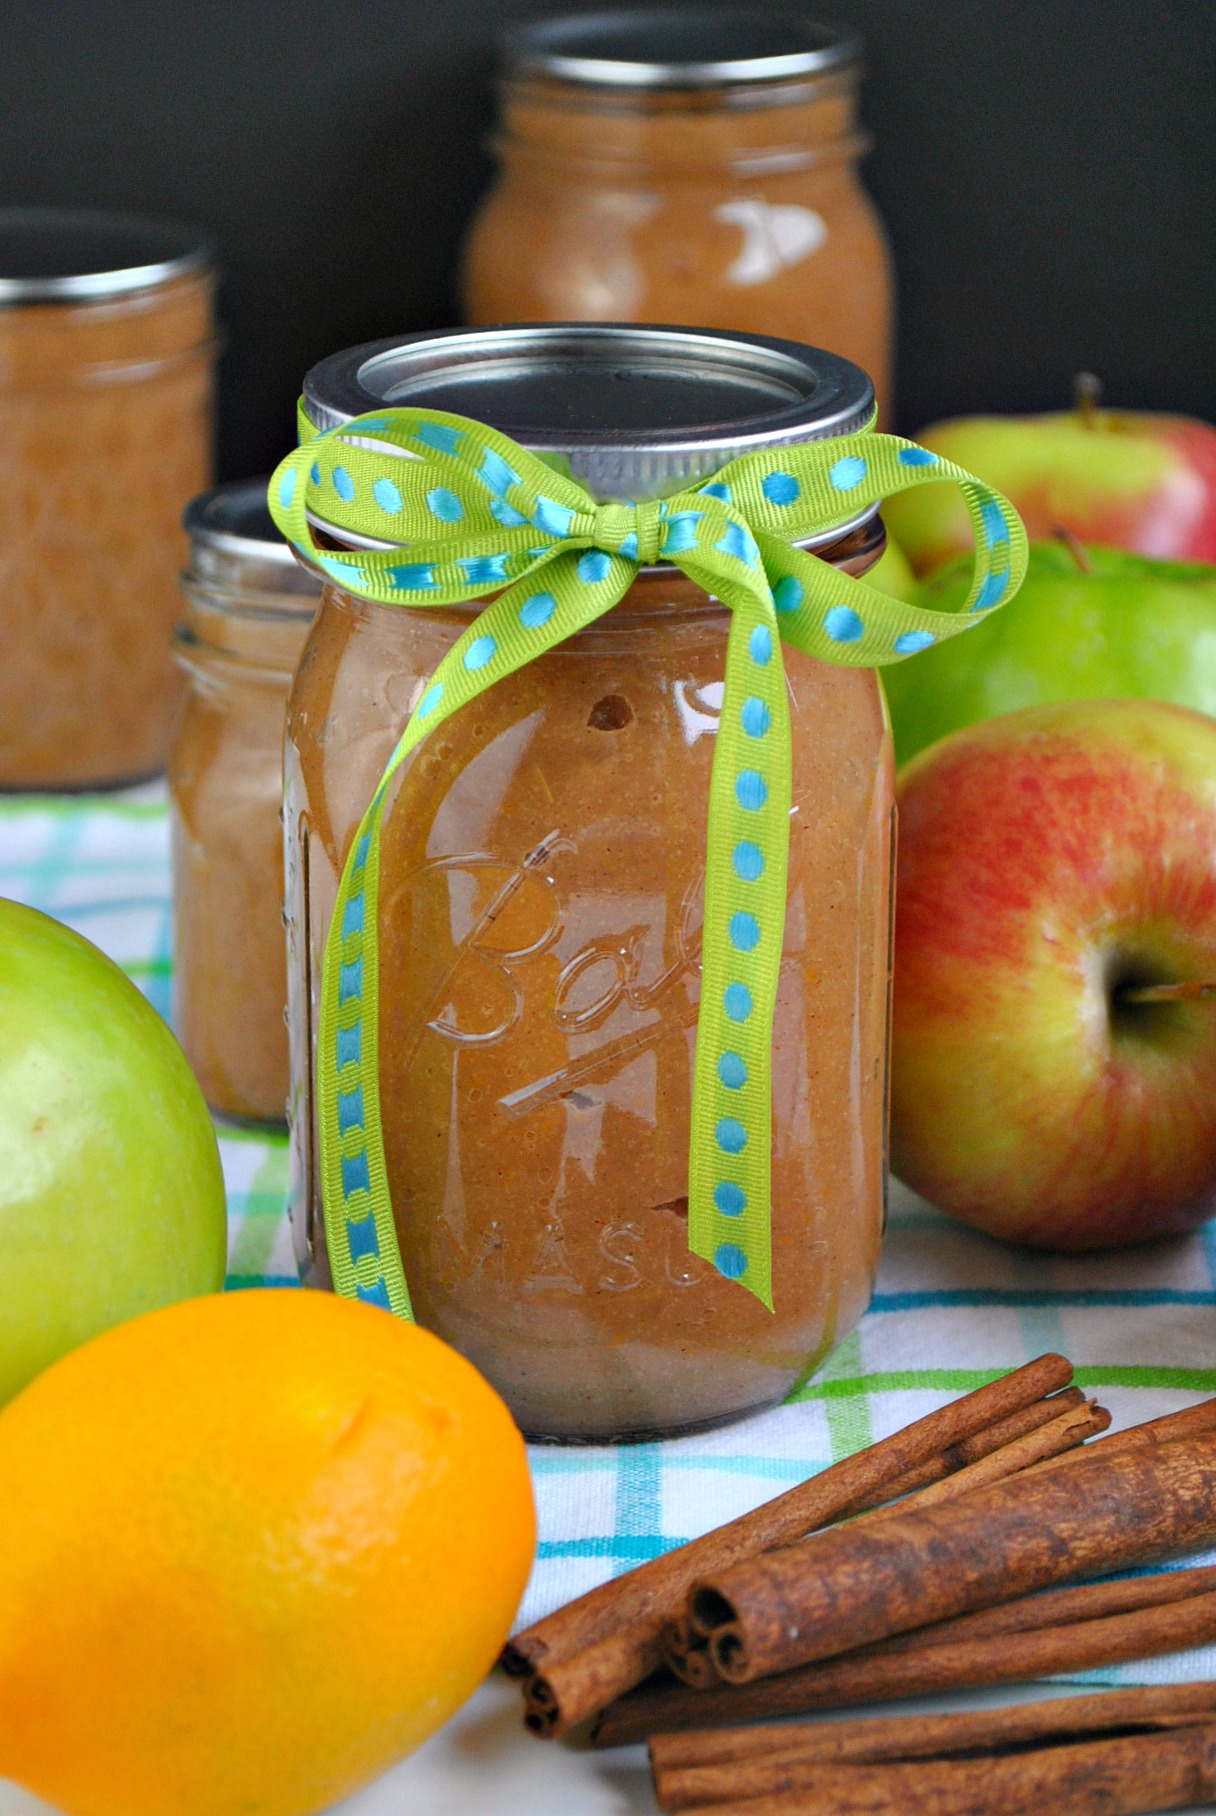 Homemade apple sauce  you-made-that.com